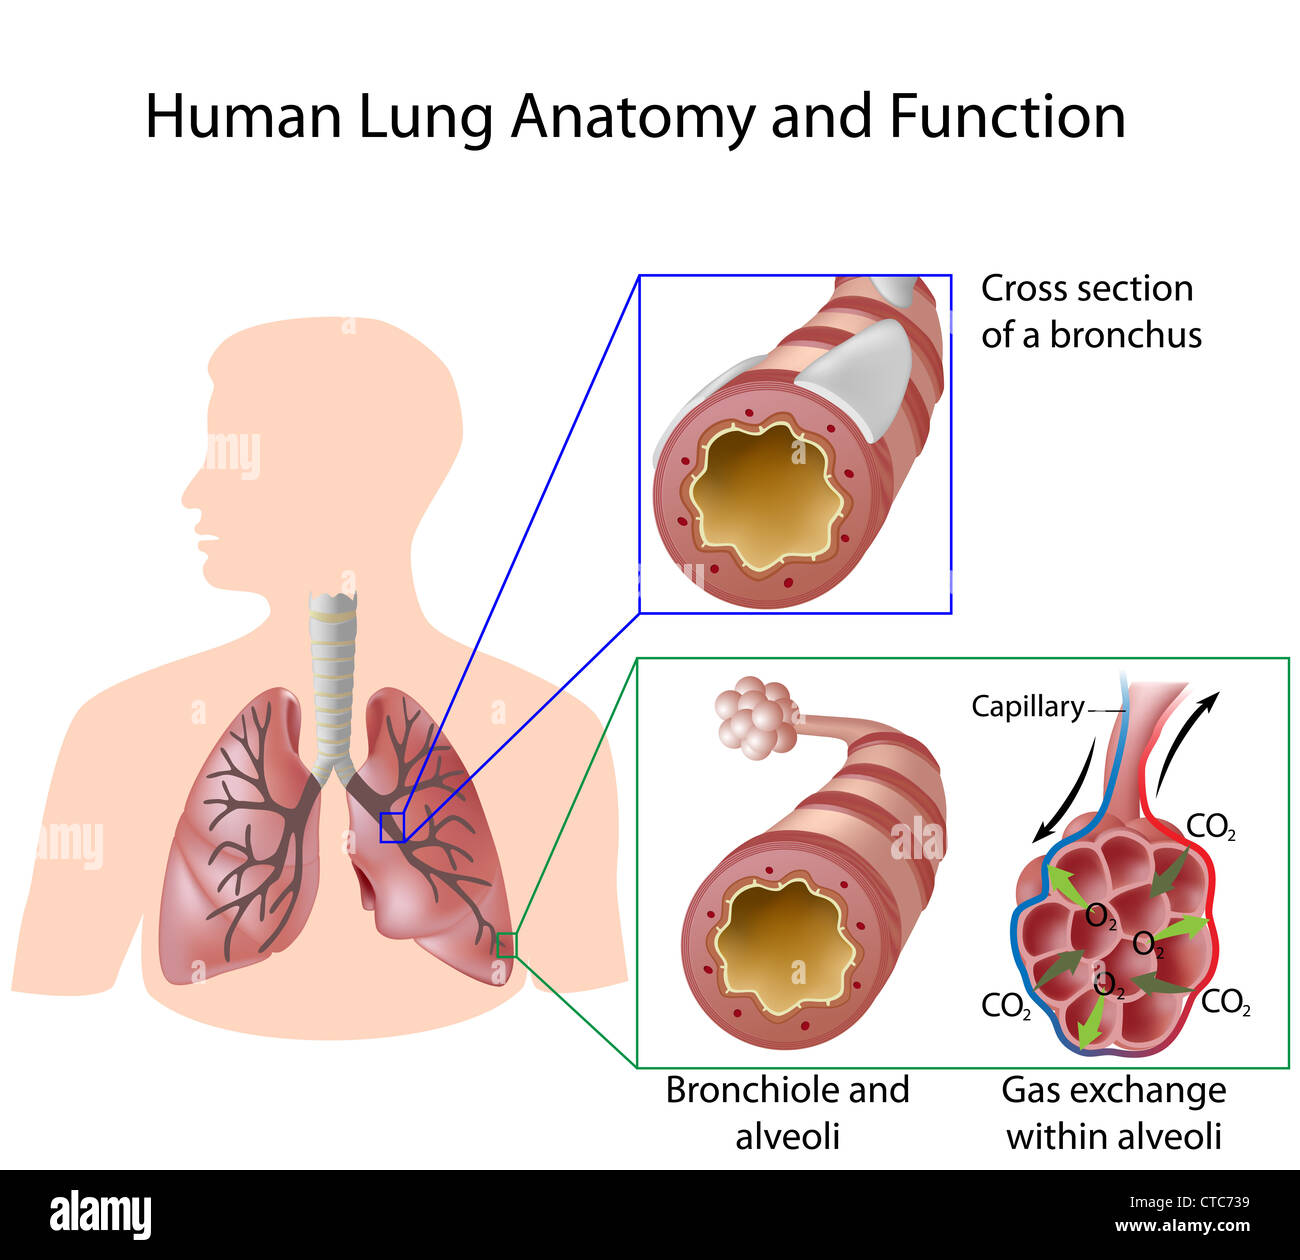 Human Lung Anatomy And Function Stock Photo 49441485 Alamy